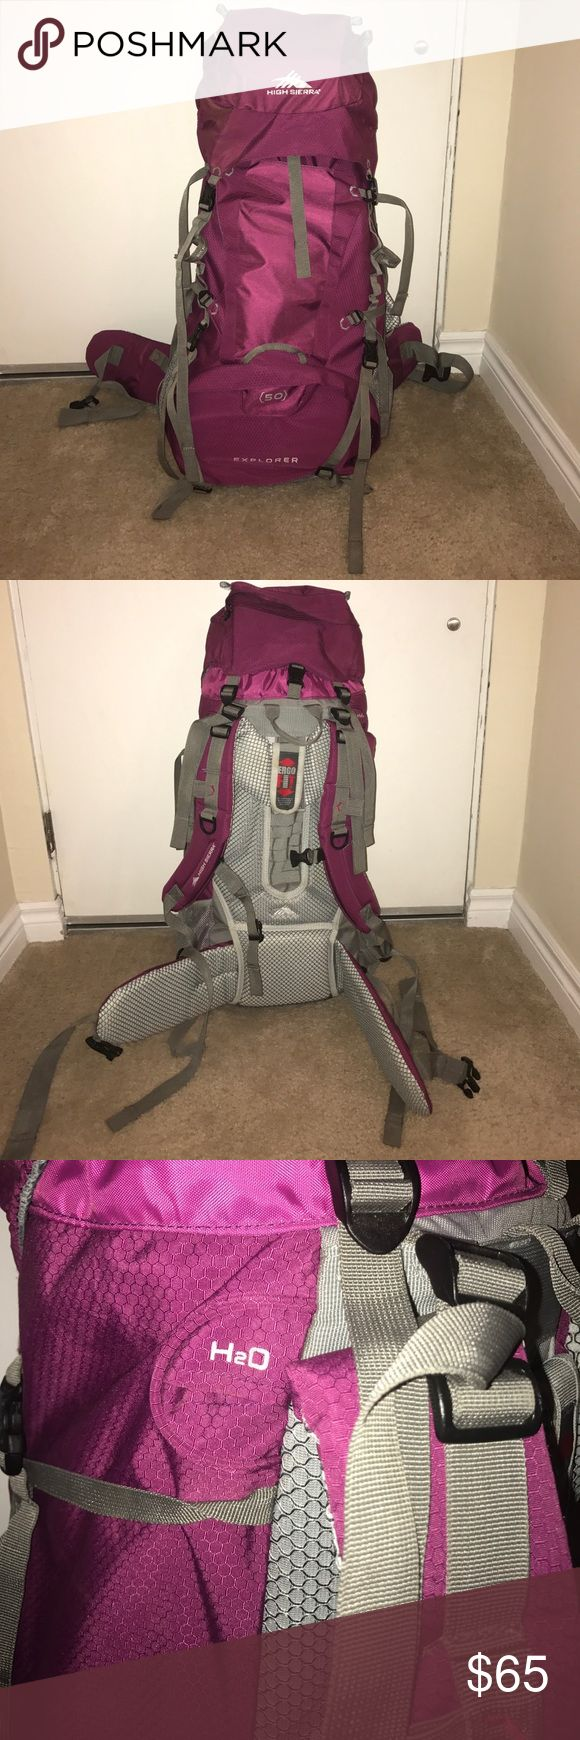 """High Sierra Women's 50L Explorer Hiking Backpack High Sierra Women's 50L Explorer Internal Frame. Bag weighs 4.5lbs. Dimensions 29"""" x 14"""" x 8"""". Holds 50L. Great for a first hiking backpack or using to backpack through Europe! This bag has been used once hiking through The Grand Canyon. Lid has a patch due to animal damage. Love this bag, but received a new one for my Birthday! High Sierra Bags Backpacks"""